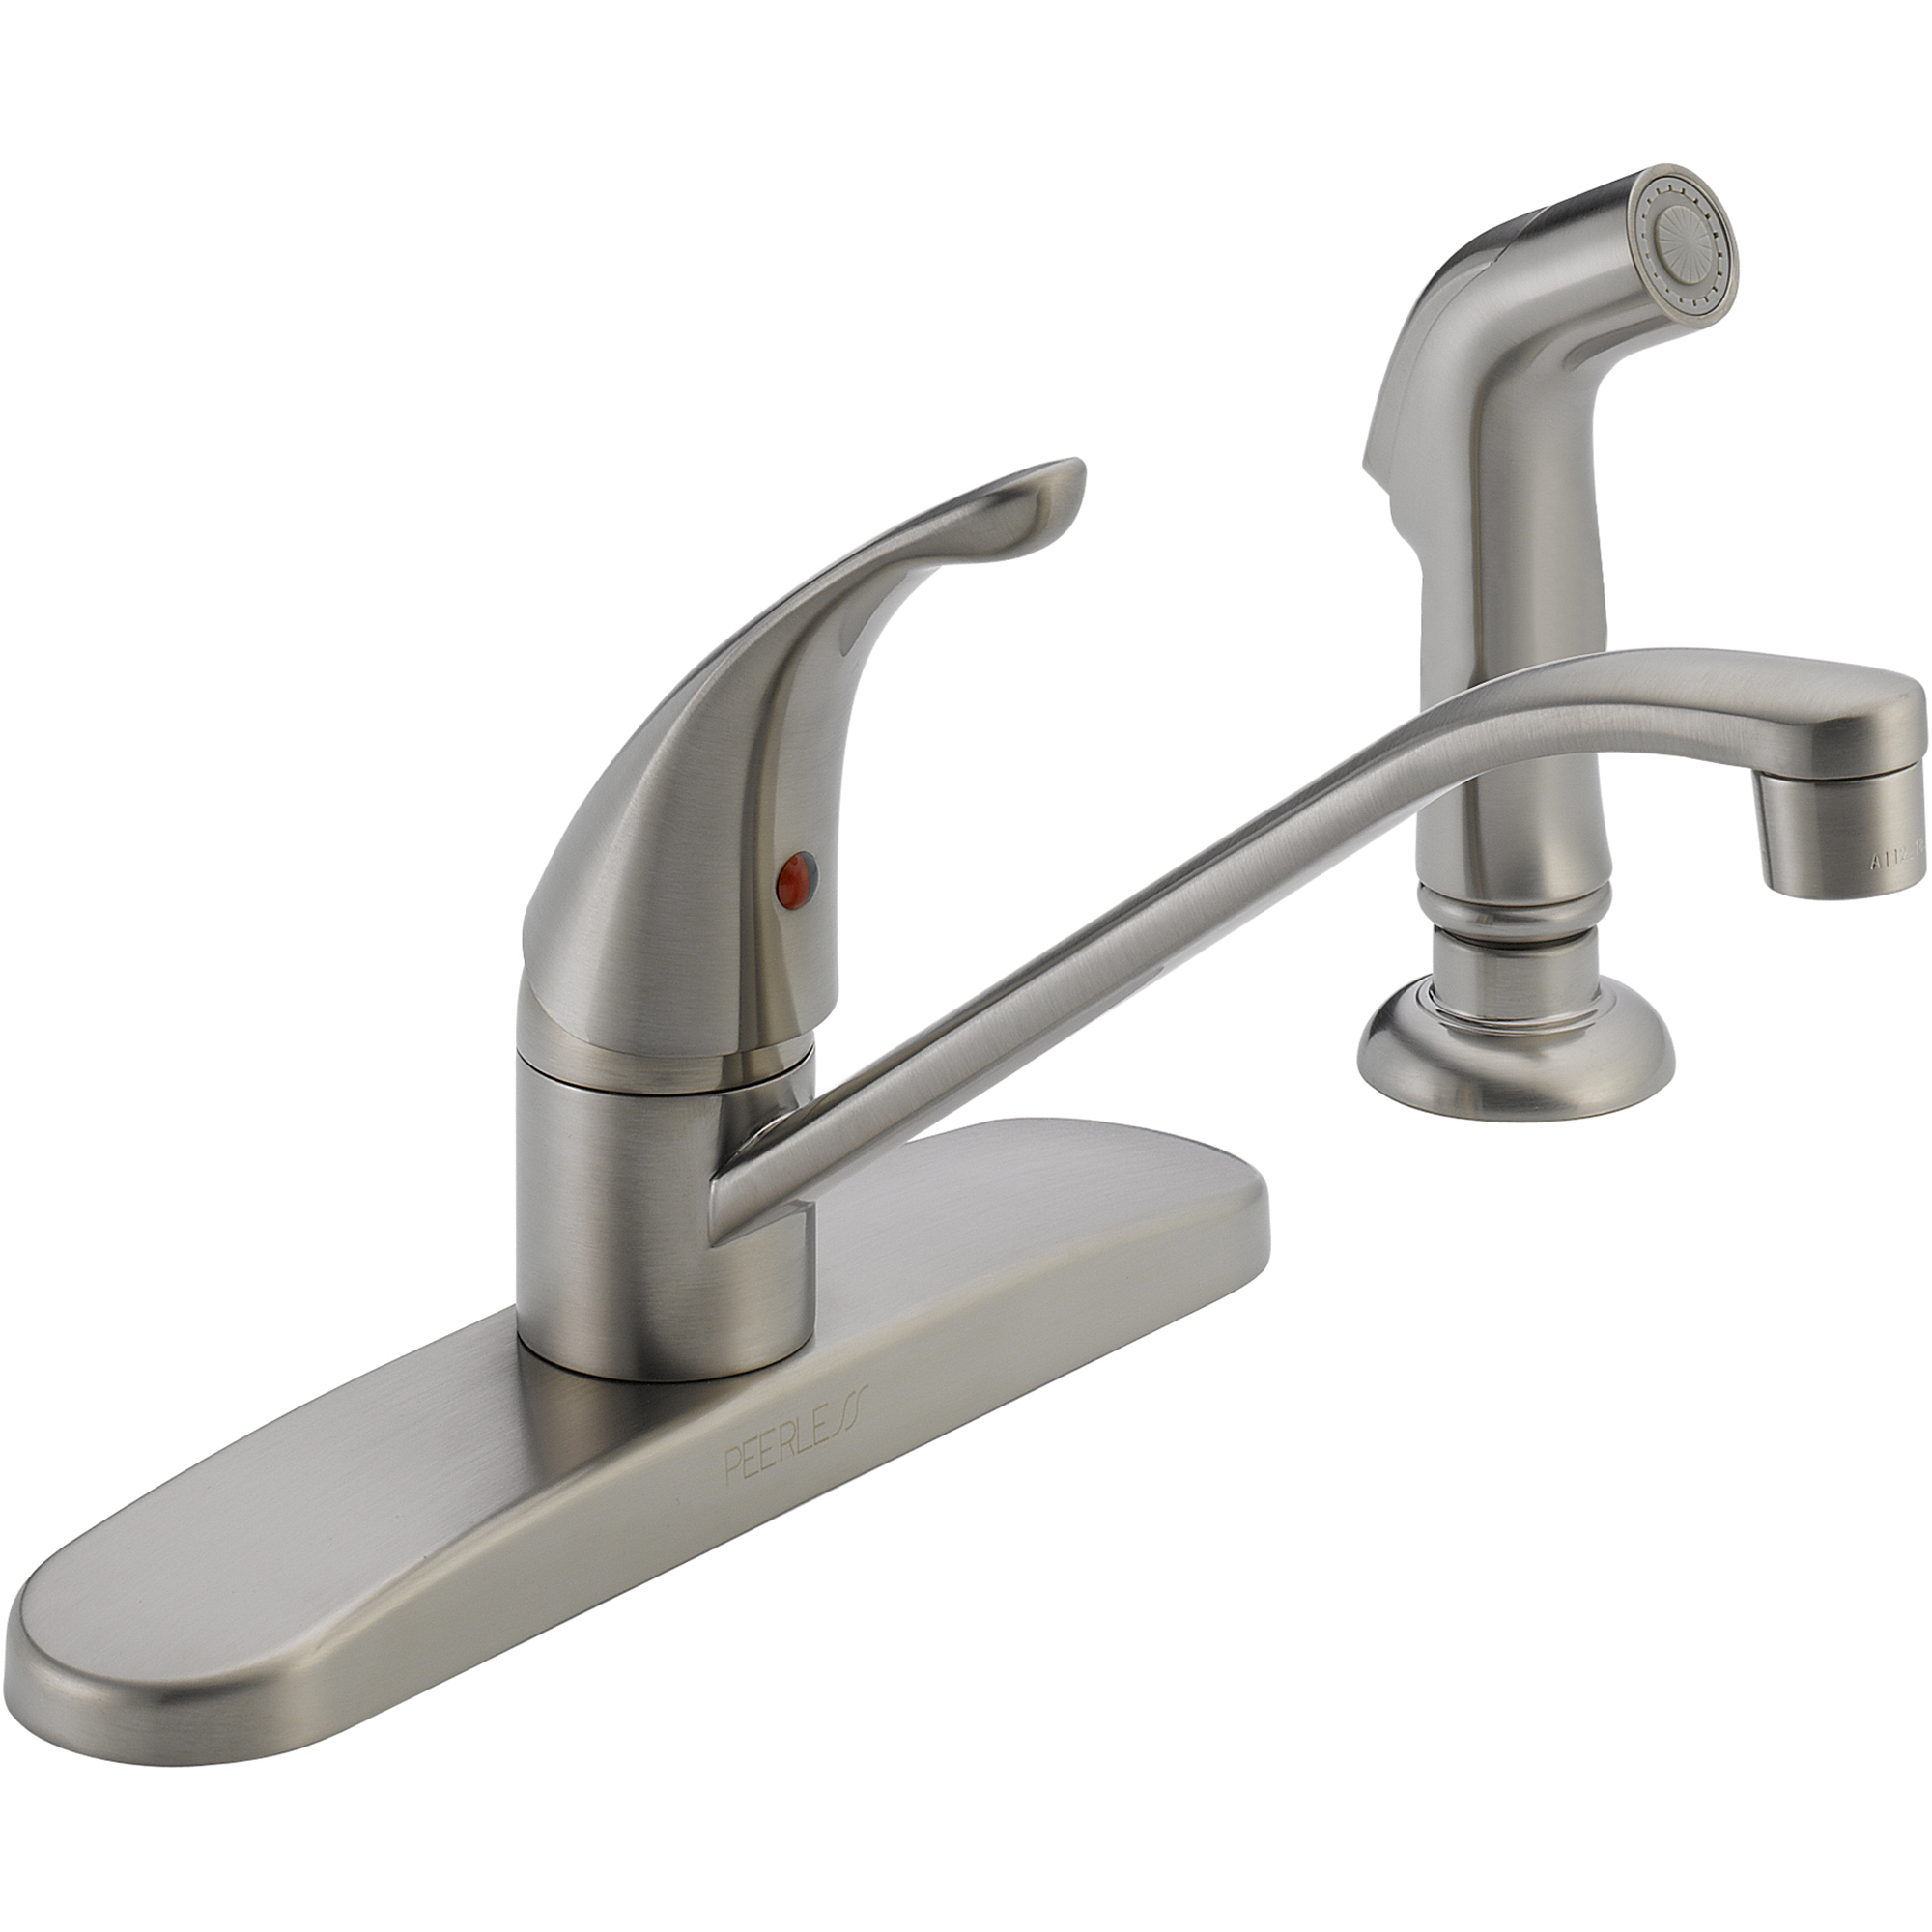 Kitchen Faucets Walmart Walmart inside Extraordinary kitchen sink faucets at walmart you should have